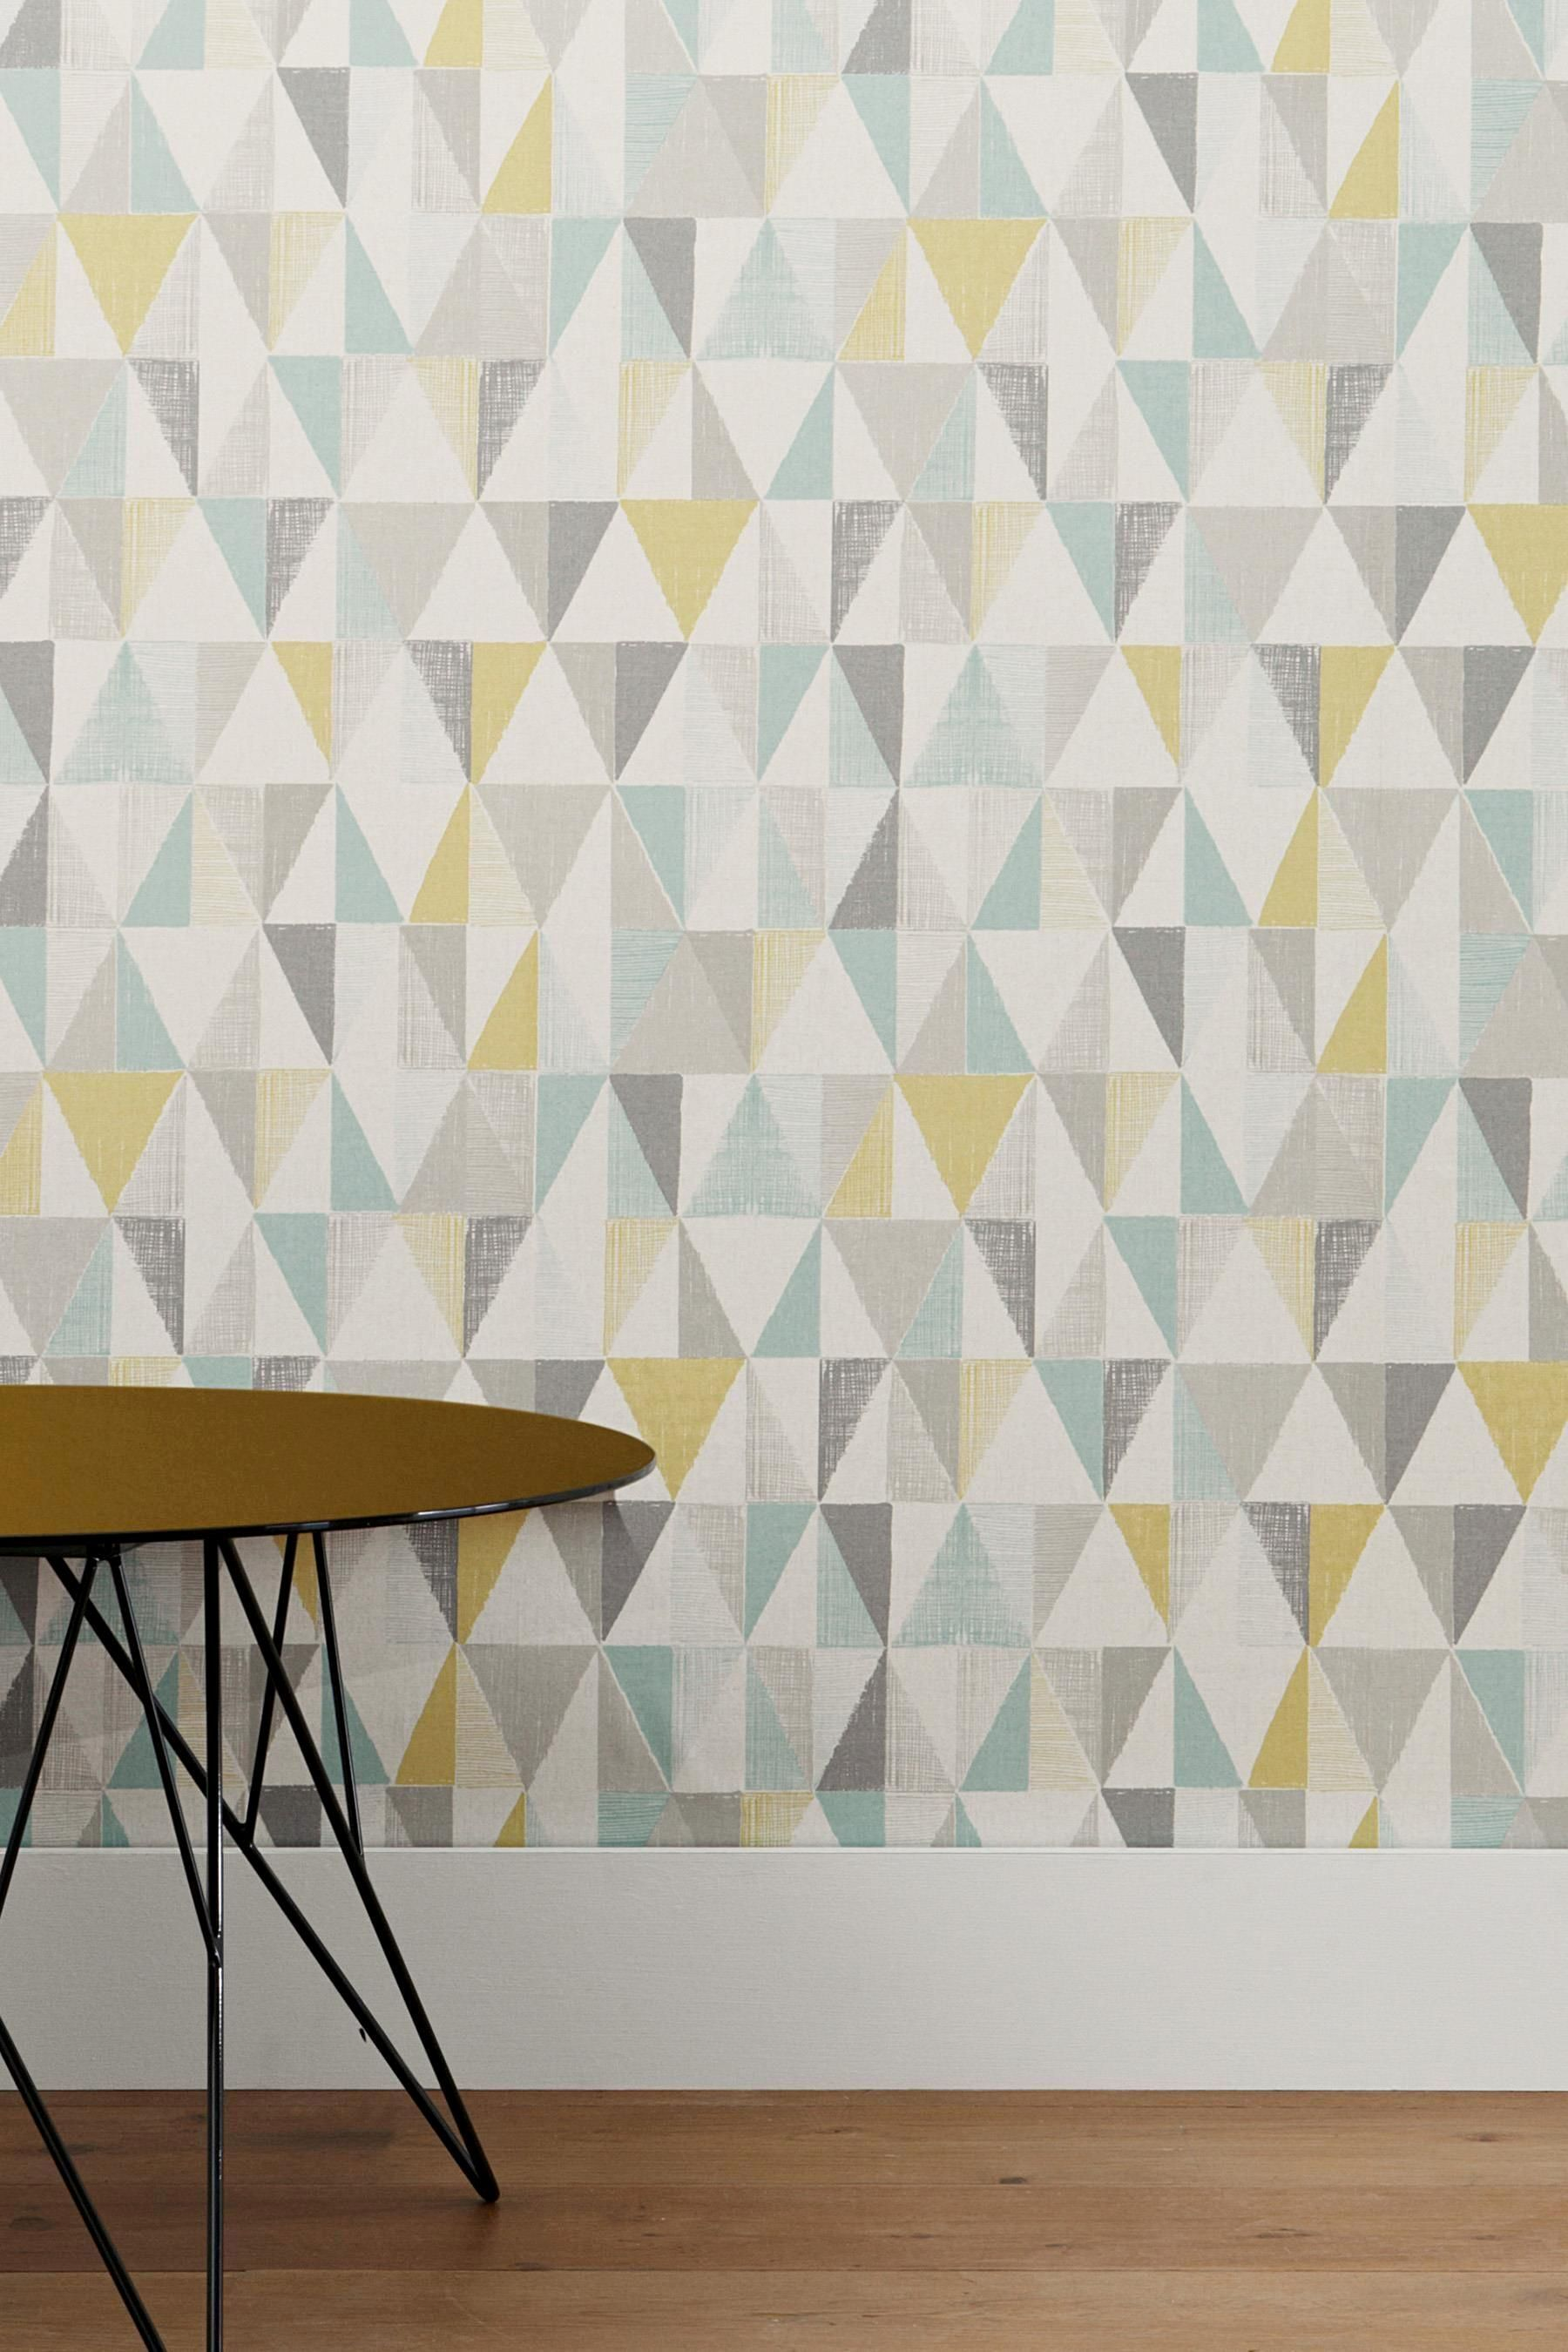 Affordable and stylish wallpaper from Next Pinterest